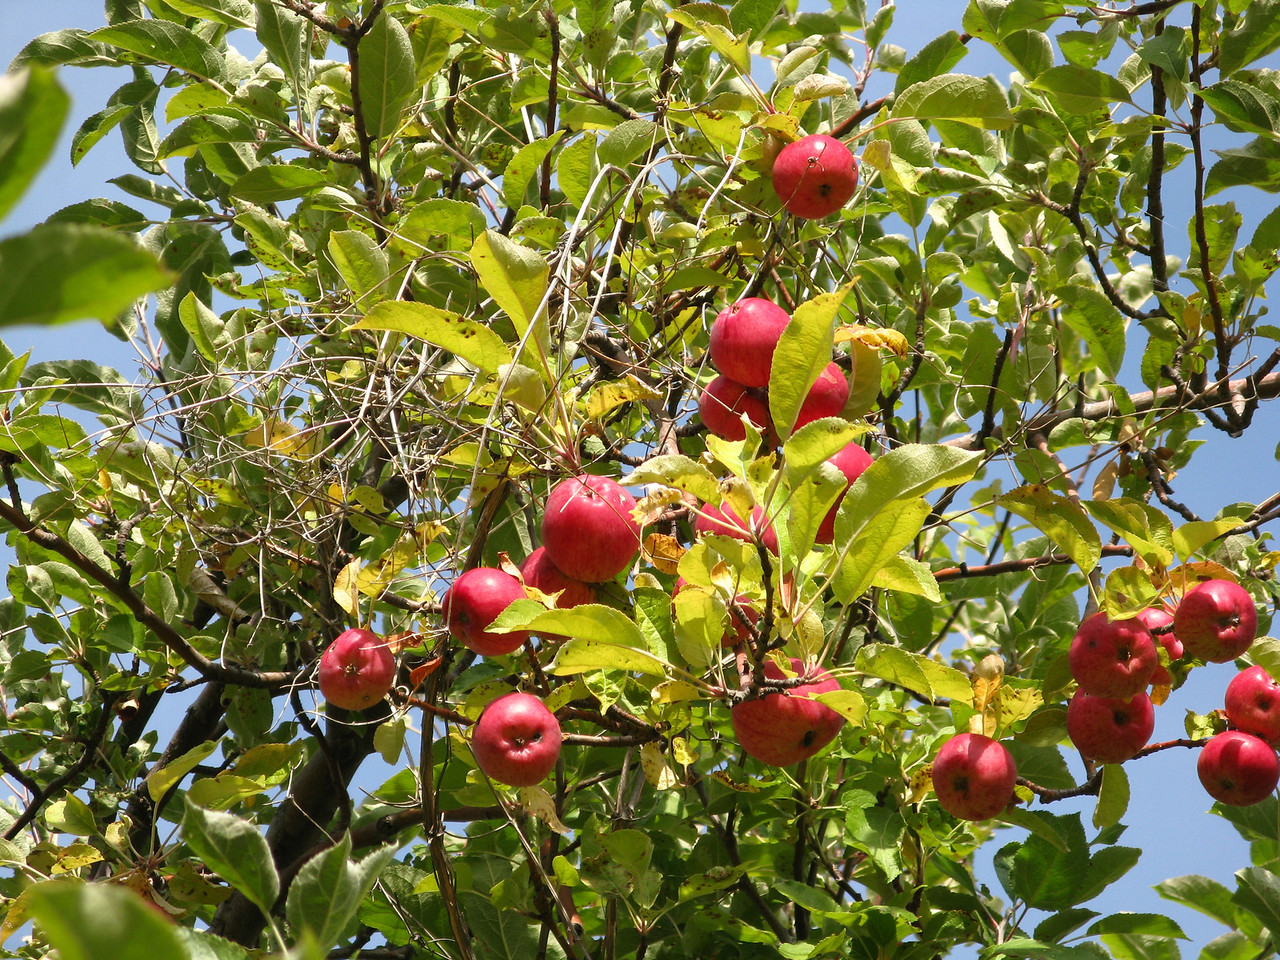 The apples were ripe, but too high to reach.  The deer probably ate the low lying fruit.